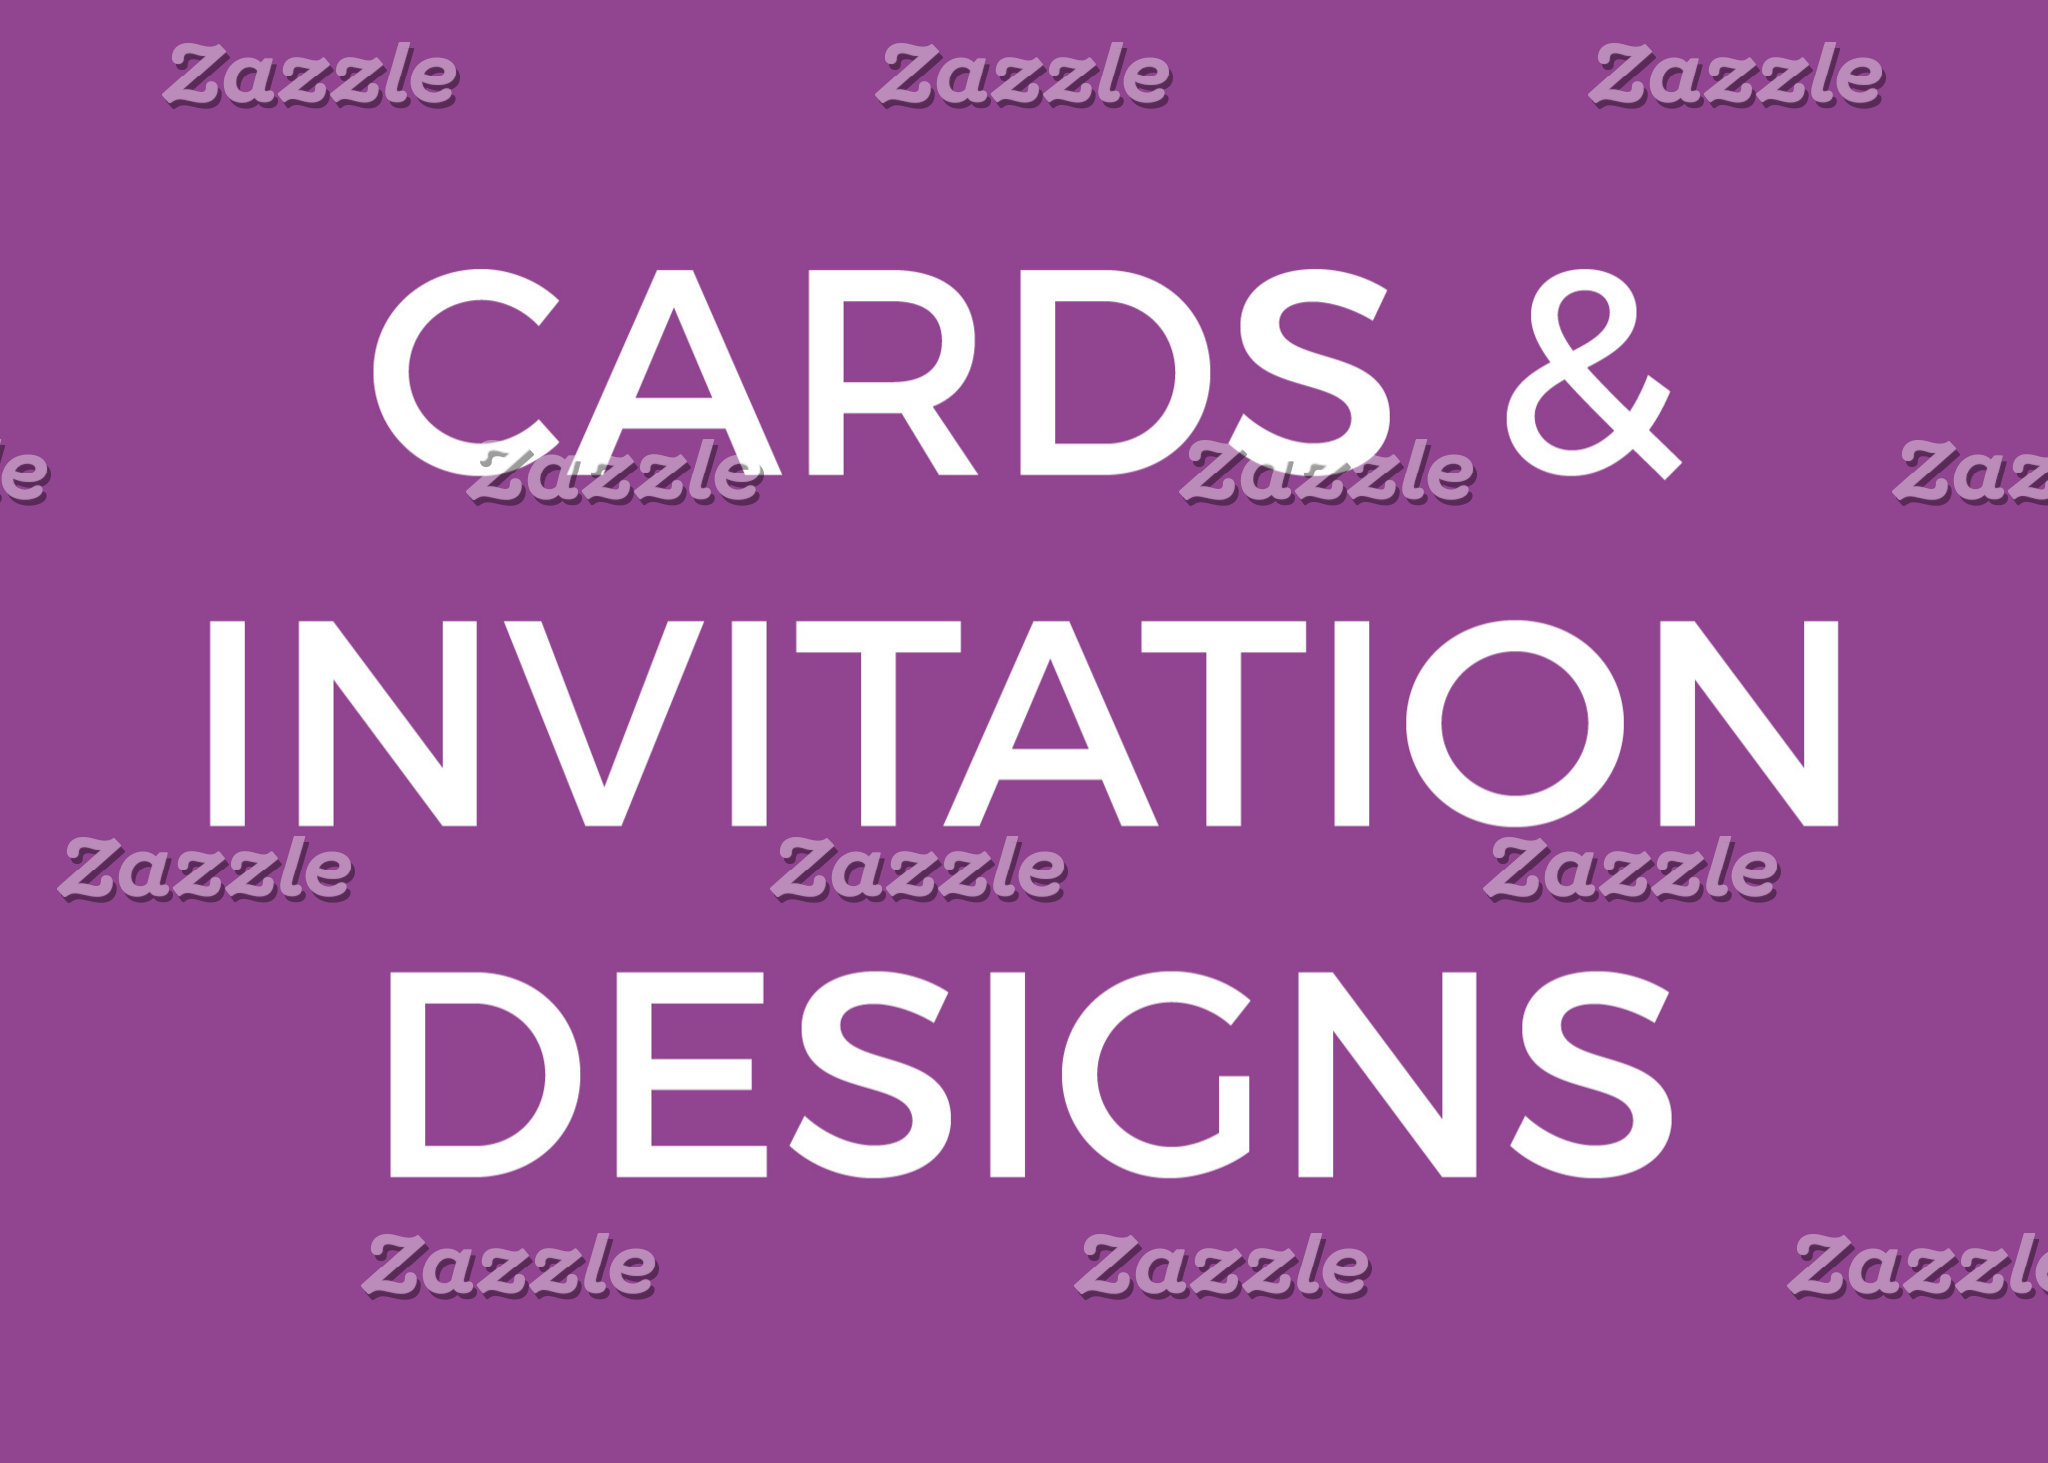 Cards & Invitation Designs